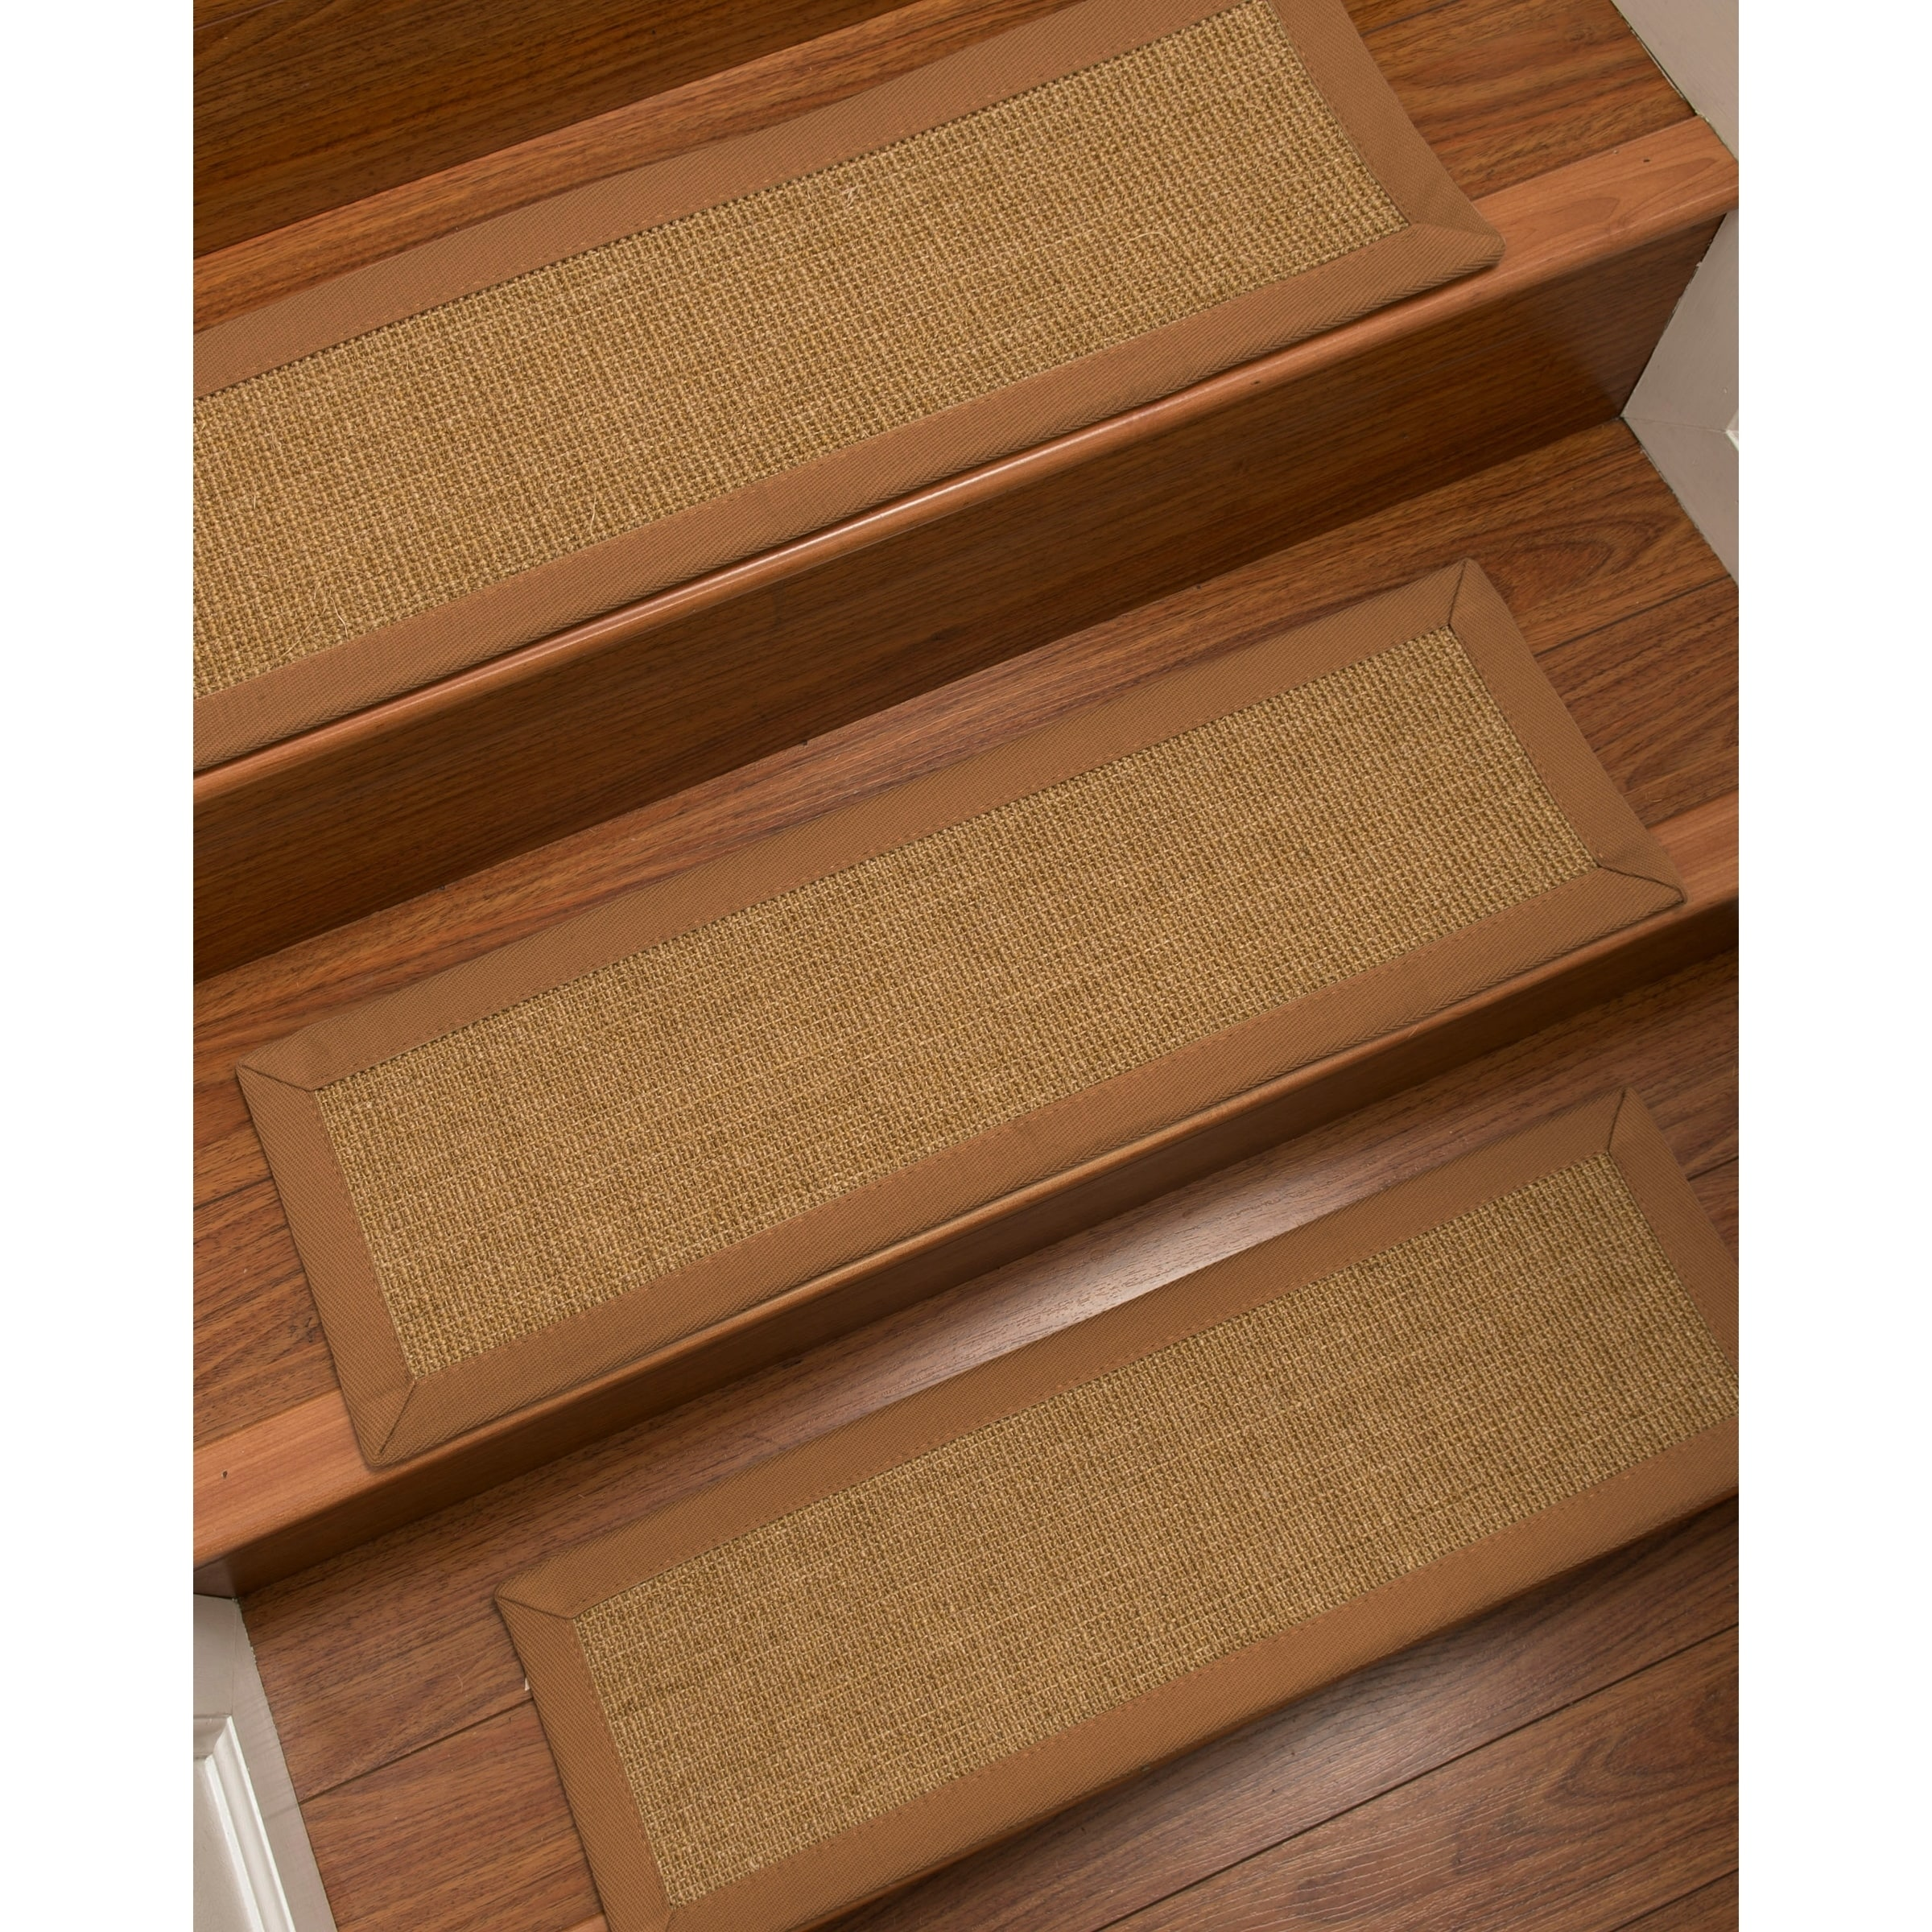 Shop Naturalarearugs Moda Carpet Stair Treads Set Of 13 9 X 29